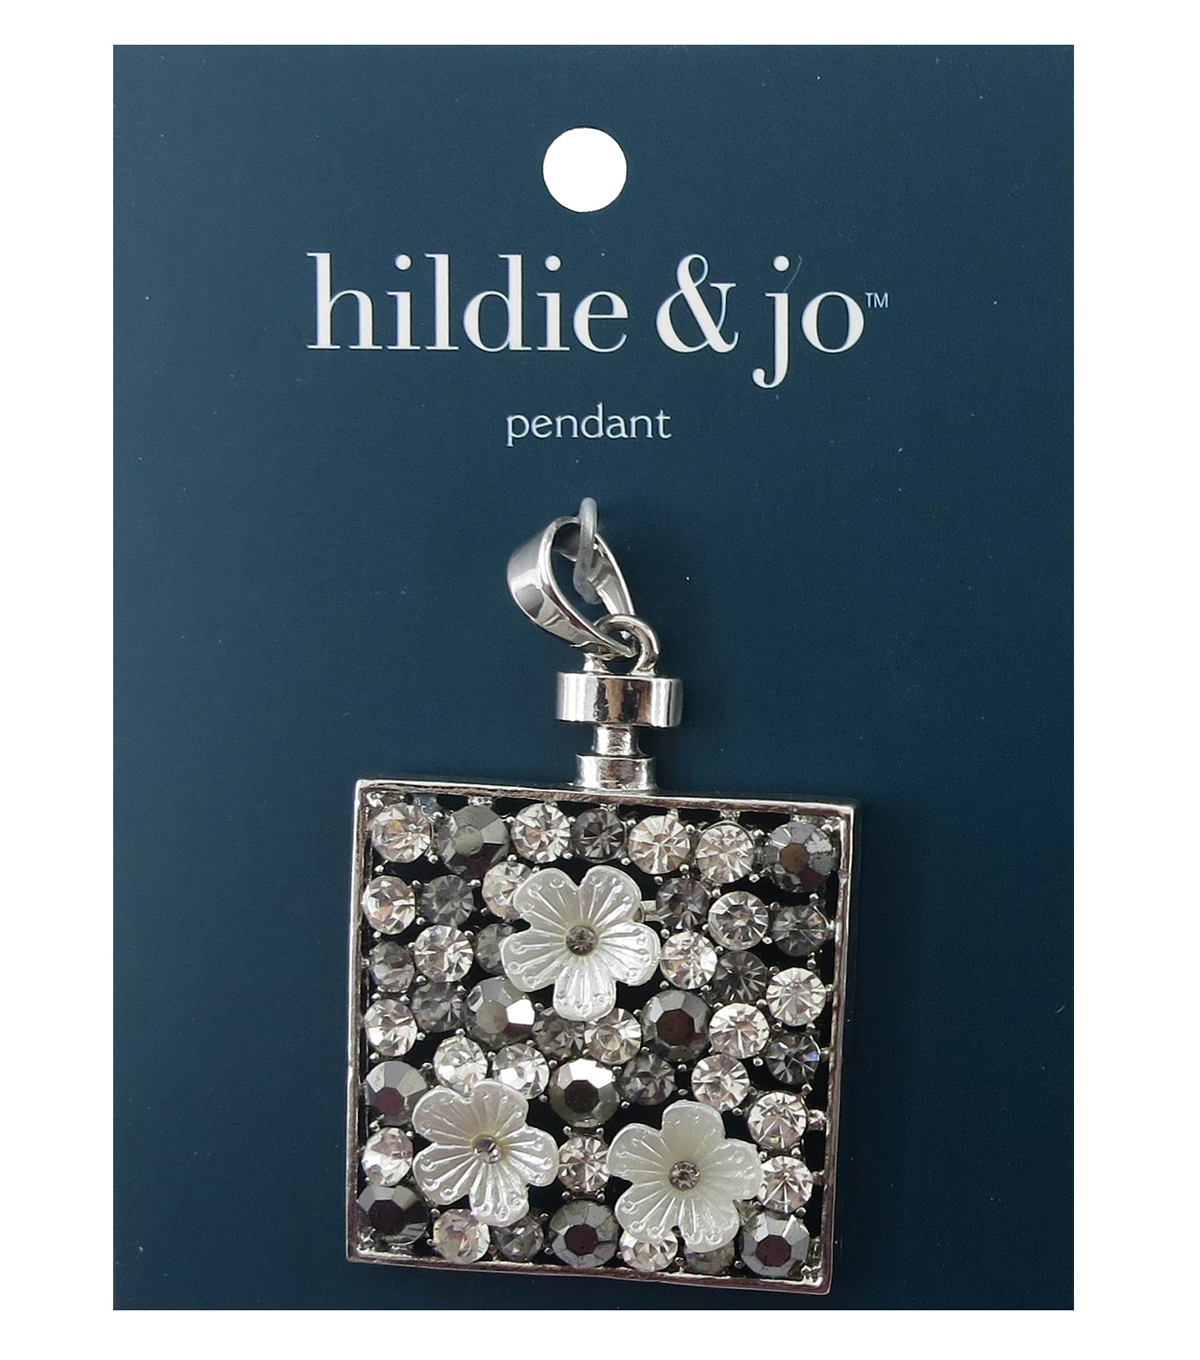 hildie & jo Square Silver Pendant with Flowers-Clear/Gray Crystal